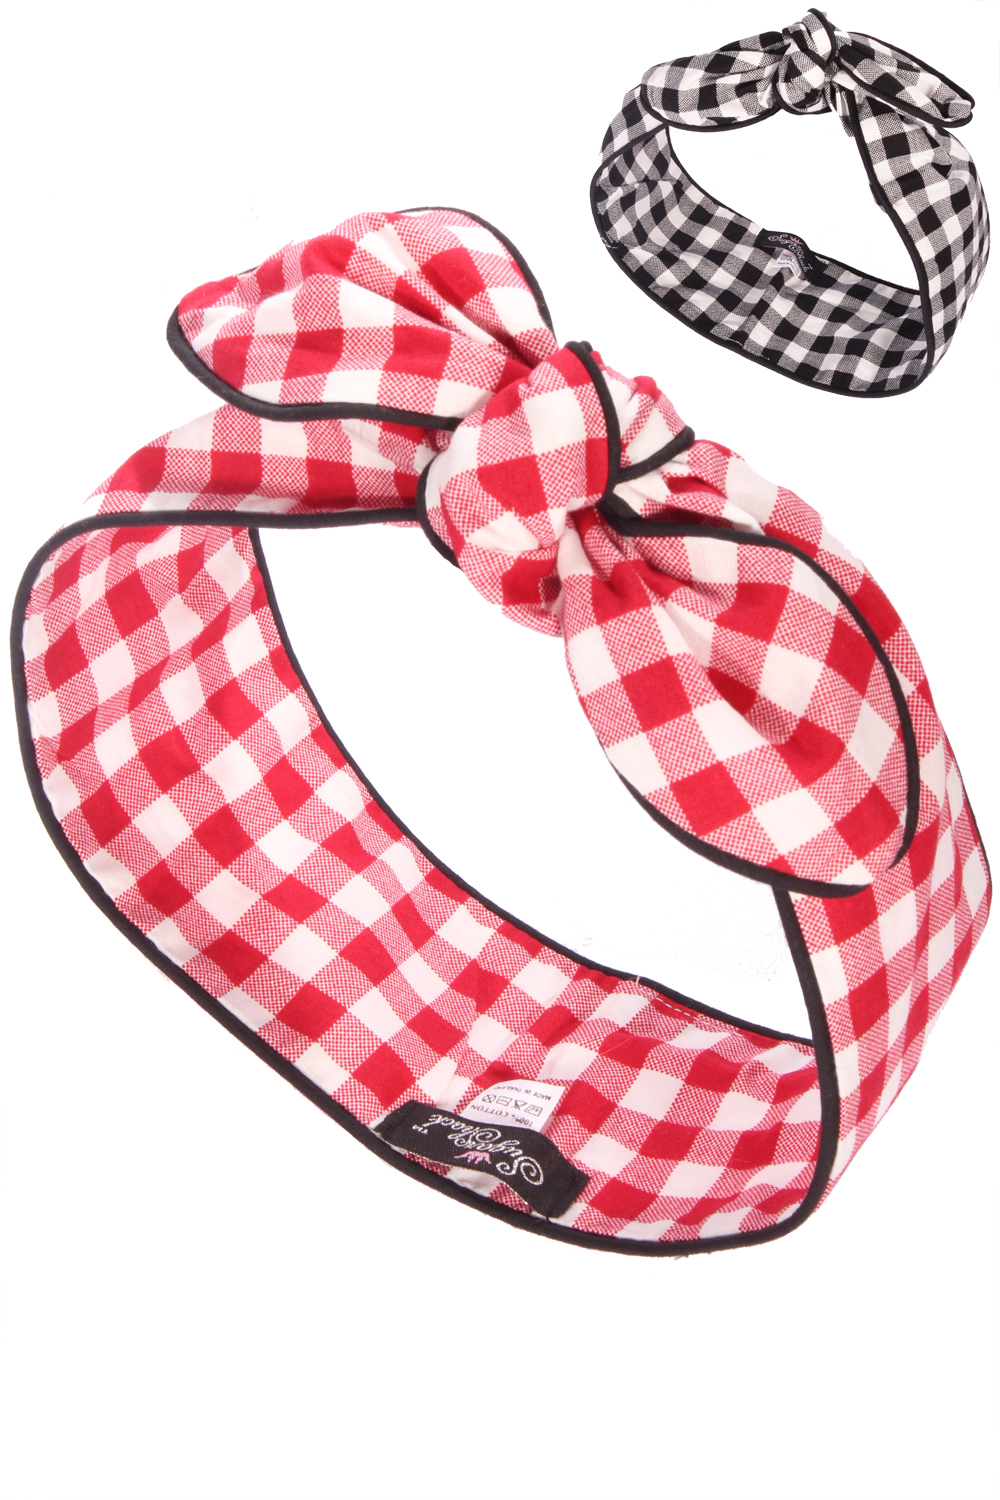 Gingham rockabilly Karo Haarreif pin up Frisuren Haarband kariert